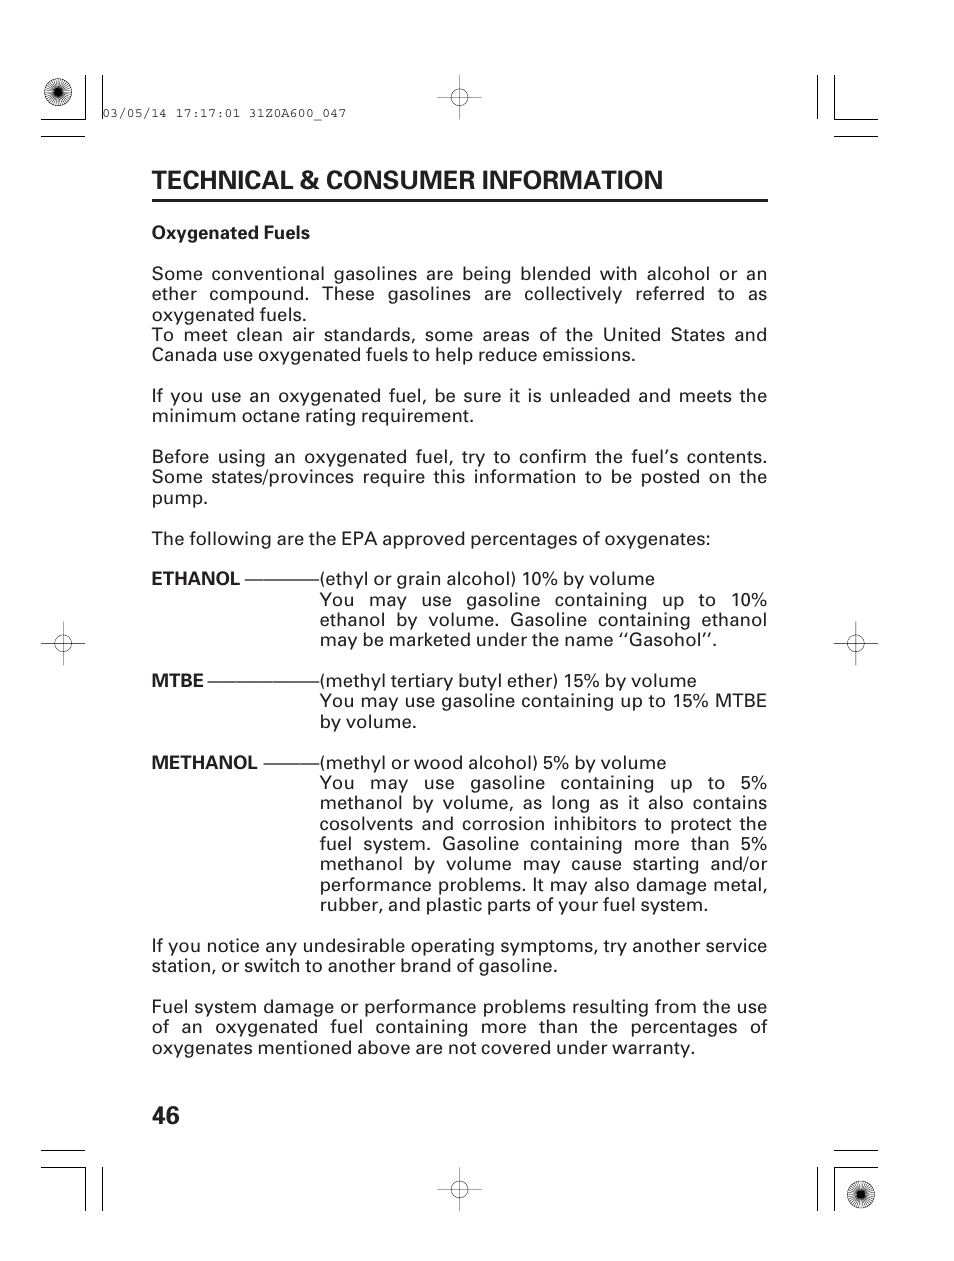 Oxygenated fuels, 46 technical & consumer information | HONDA GXV530 User  Manual | Page 48 / 60